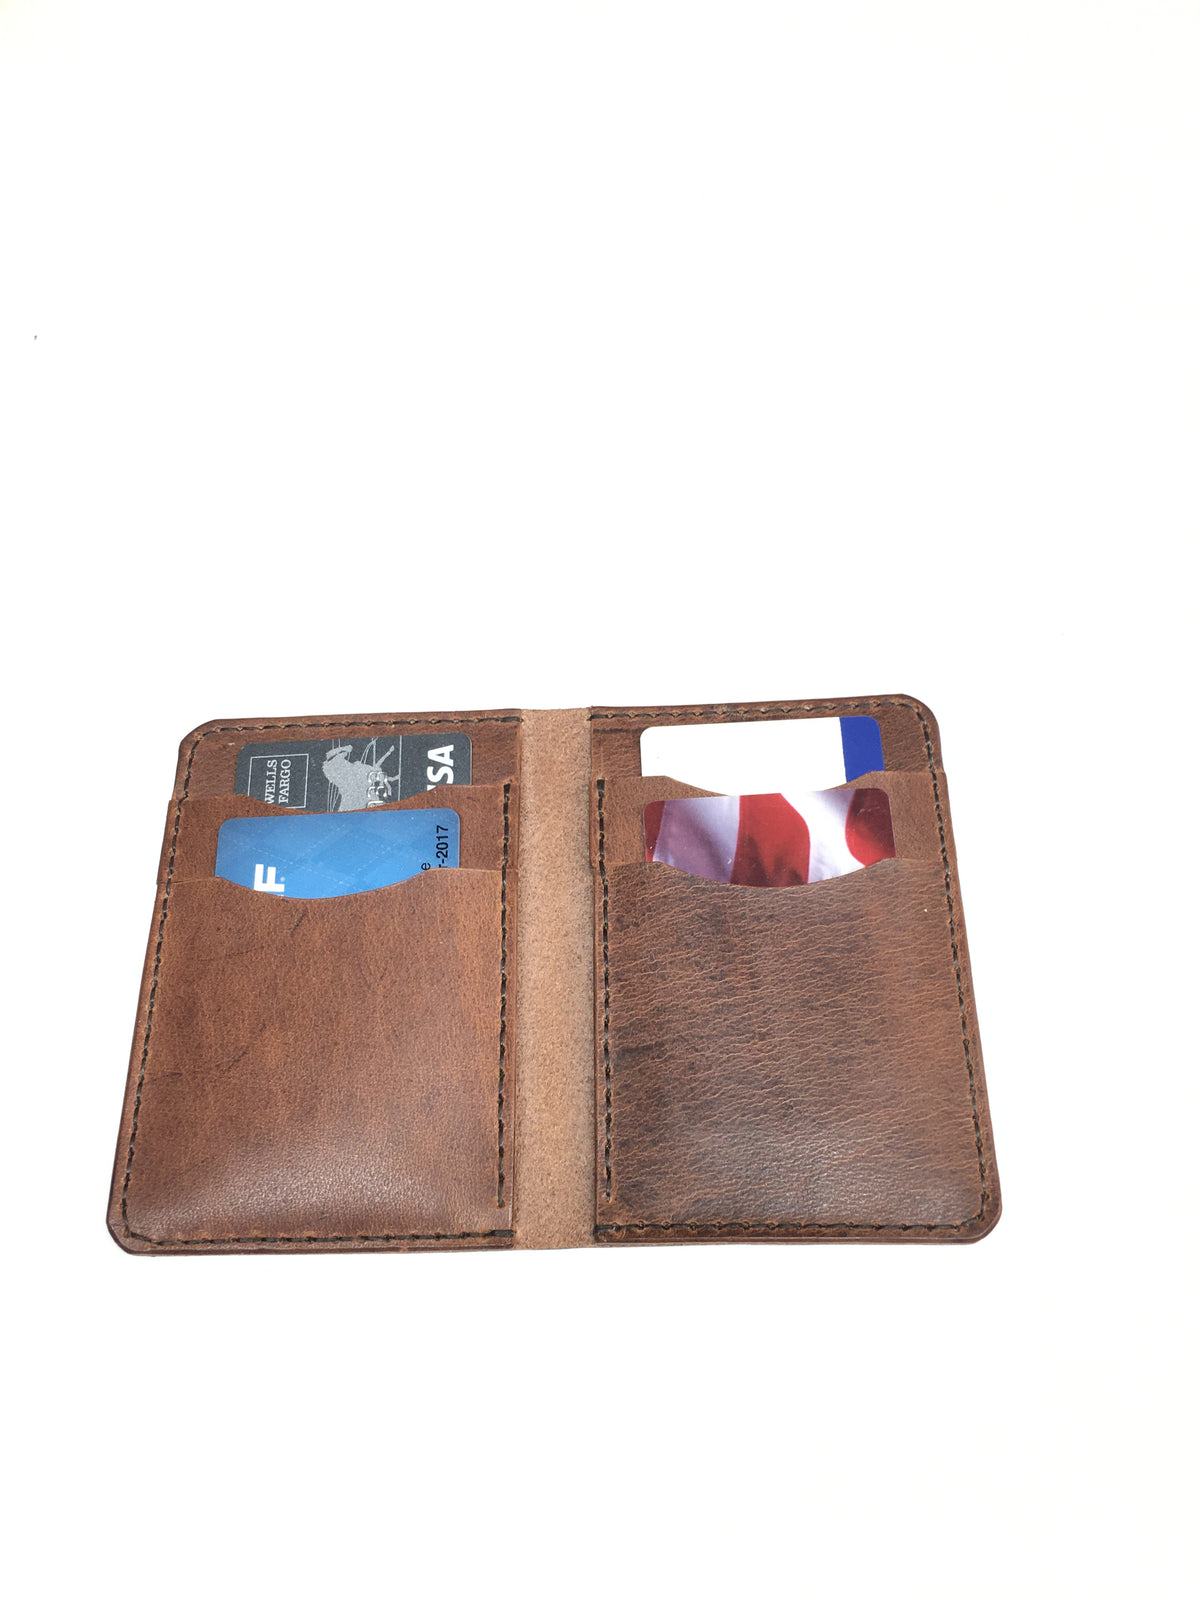 H+B CARD WALLET | VERTICAL WALLET BROWN LEATHER